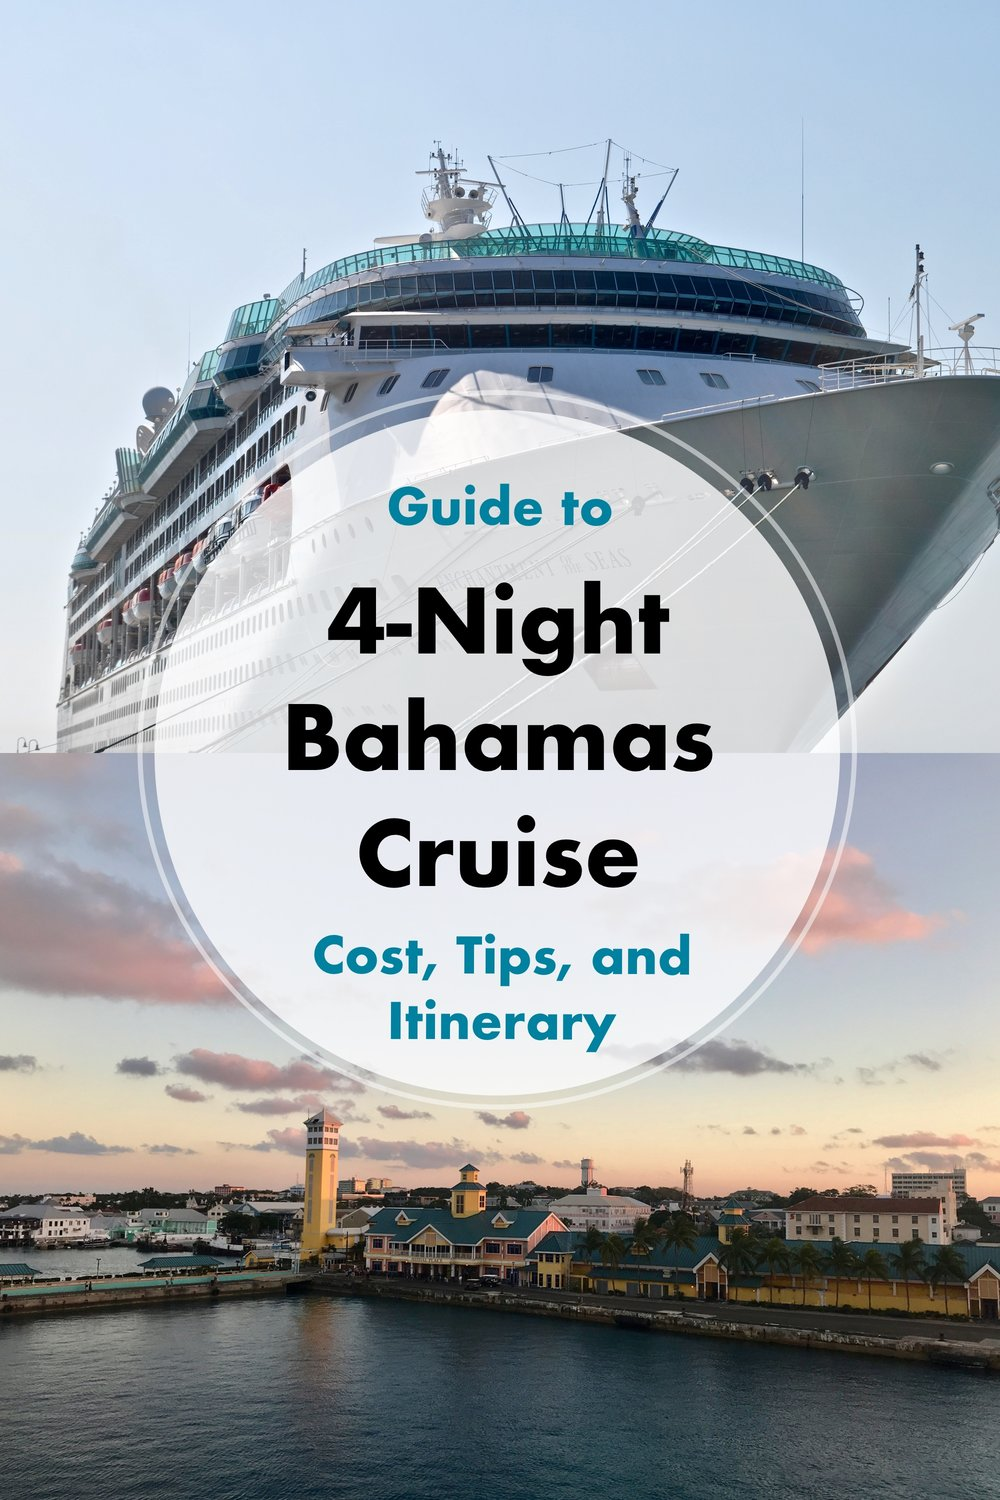 Guide to a 4-Night Bahamas Cruise: Cost, Tips, and Itinerary - A Happy Passport.  We sailed on enchantment of the seas. #enchantmentoftheseas #enchantmentots #cruise #bahamas #travel #caribbean #vacation